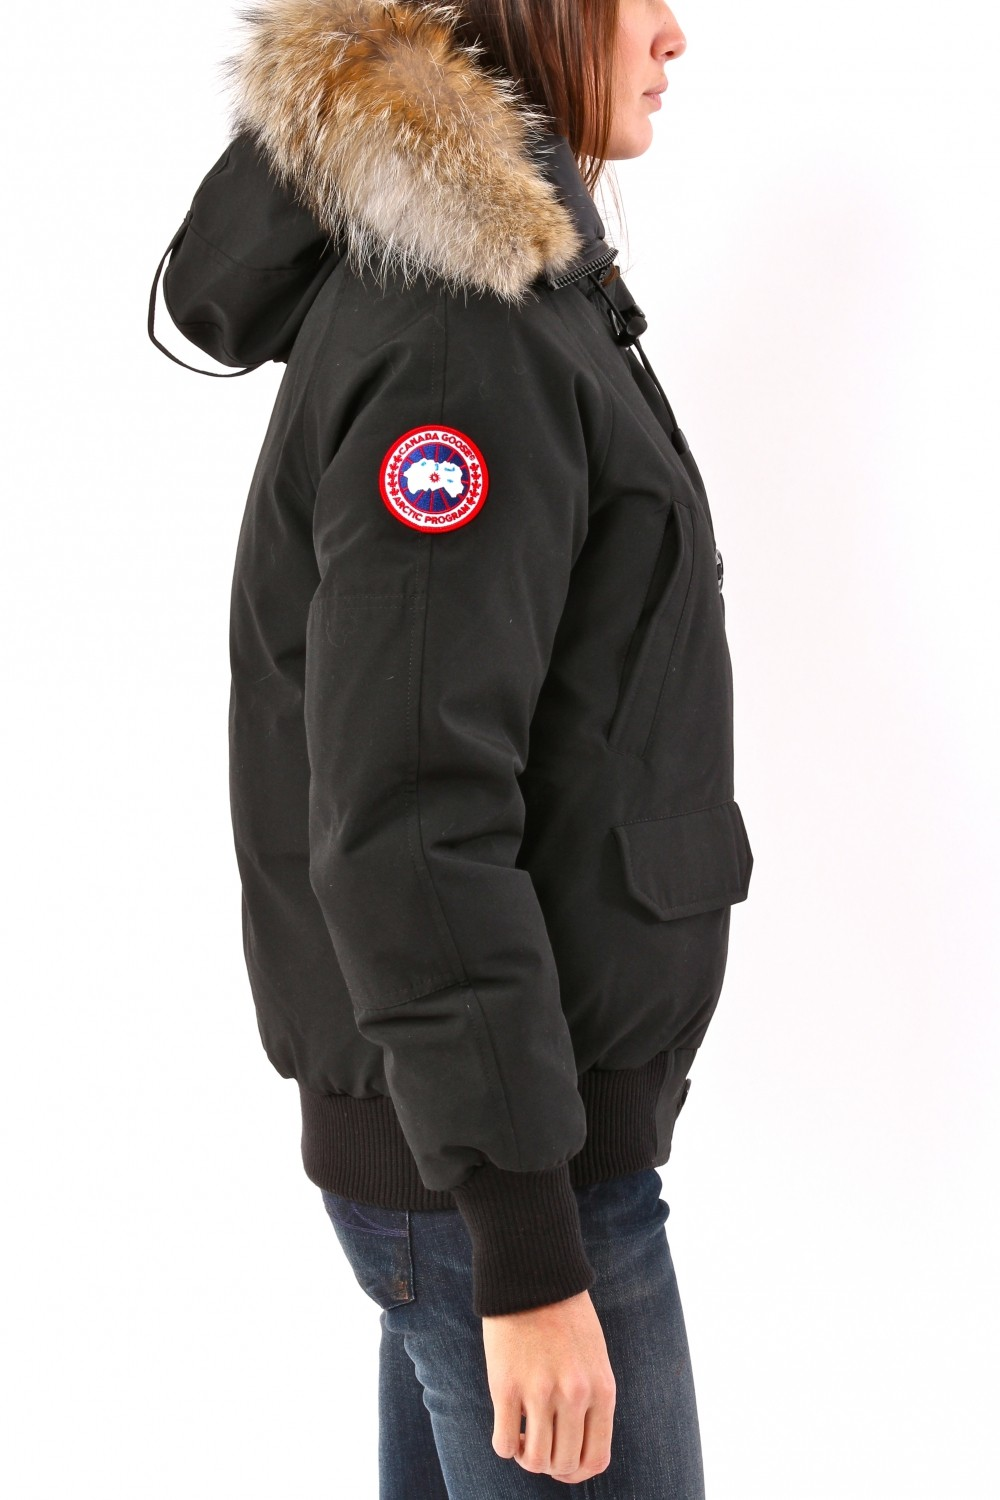 manteau canada goose pour femme canada goose langford. Black Bedroom Furniture Sets. Home Design Ideas